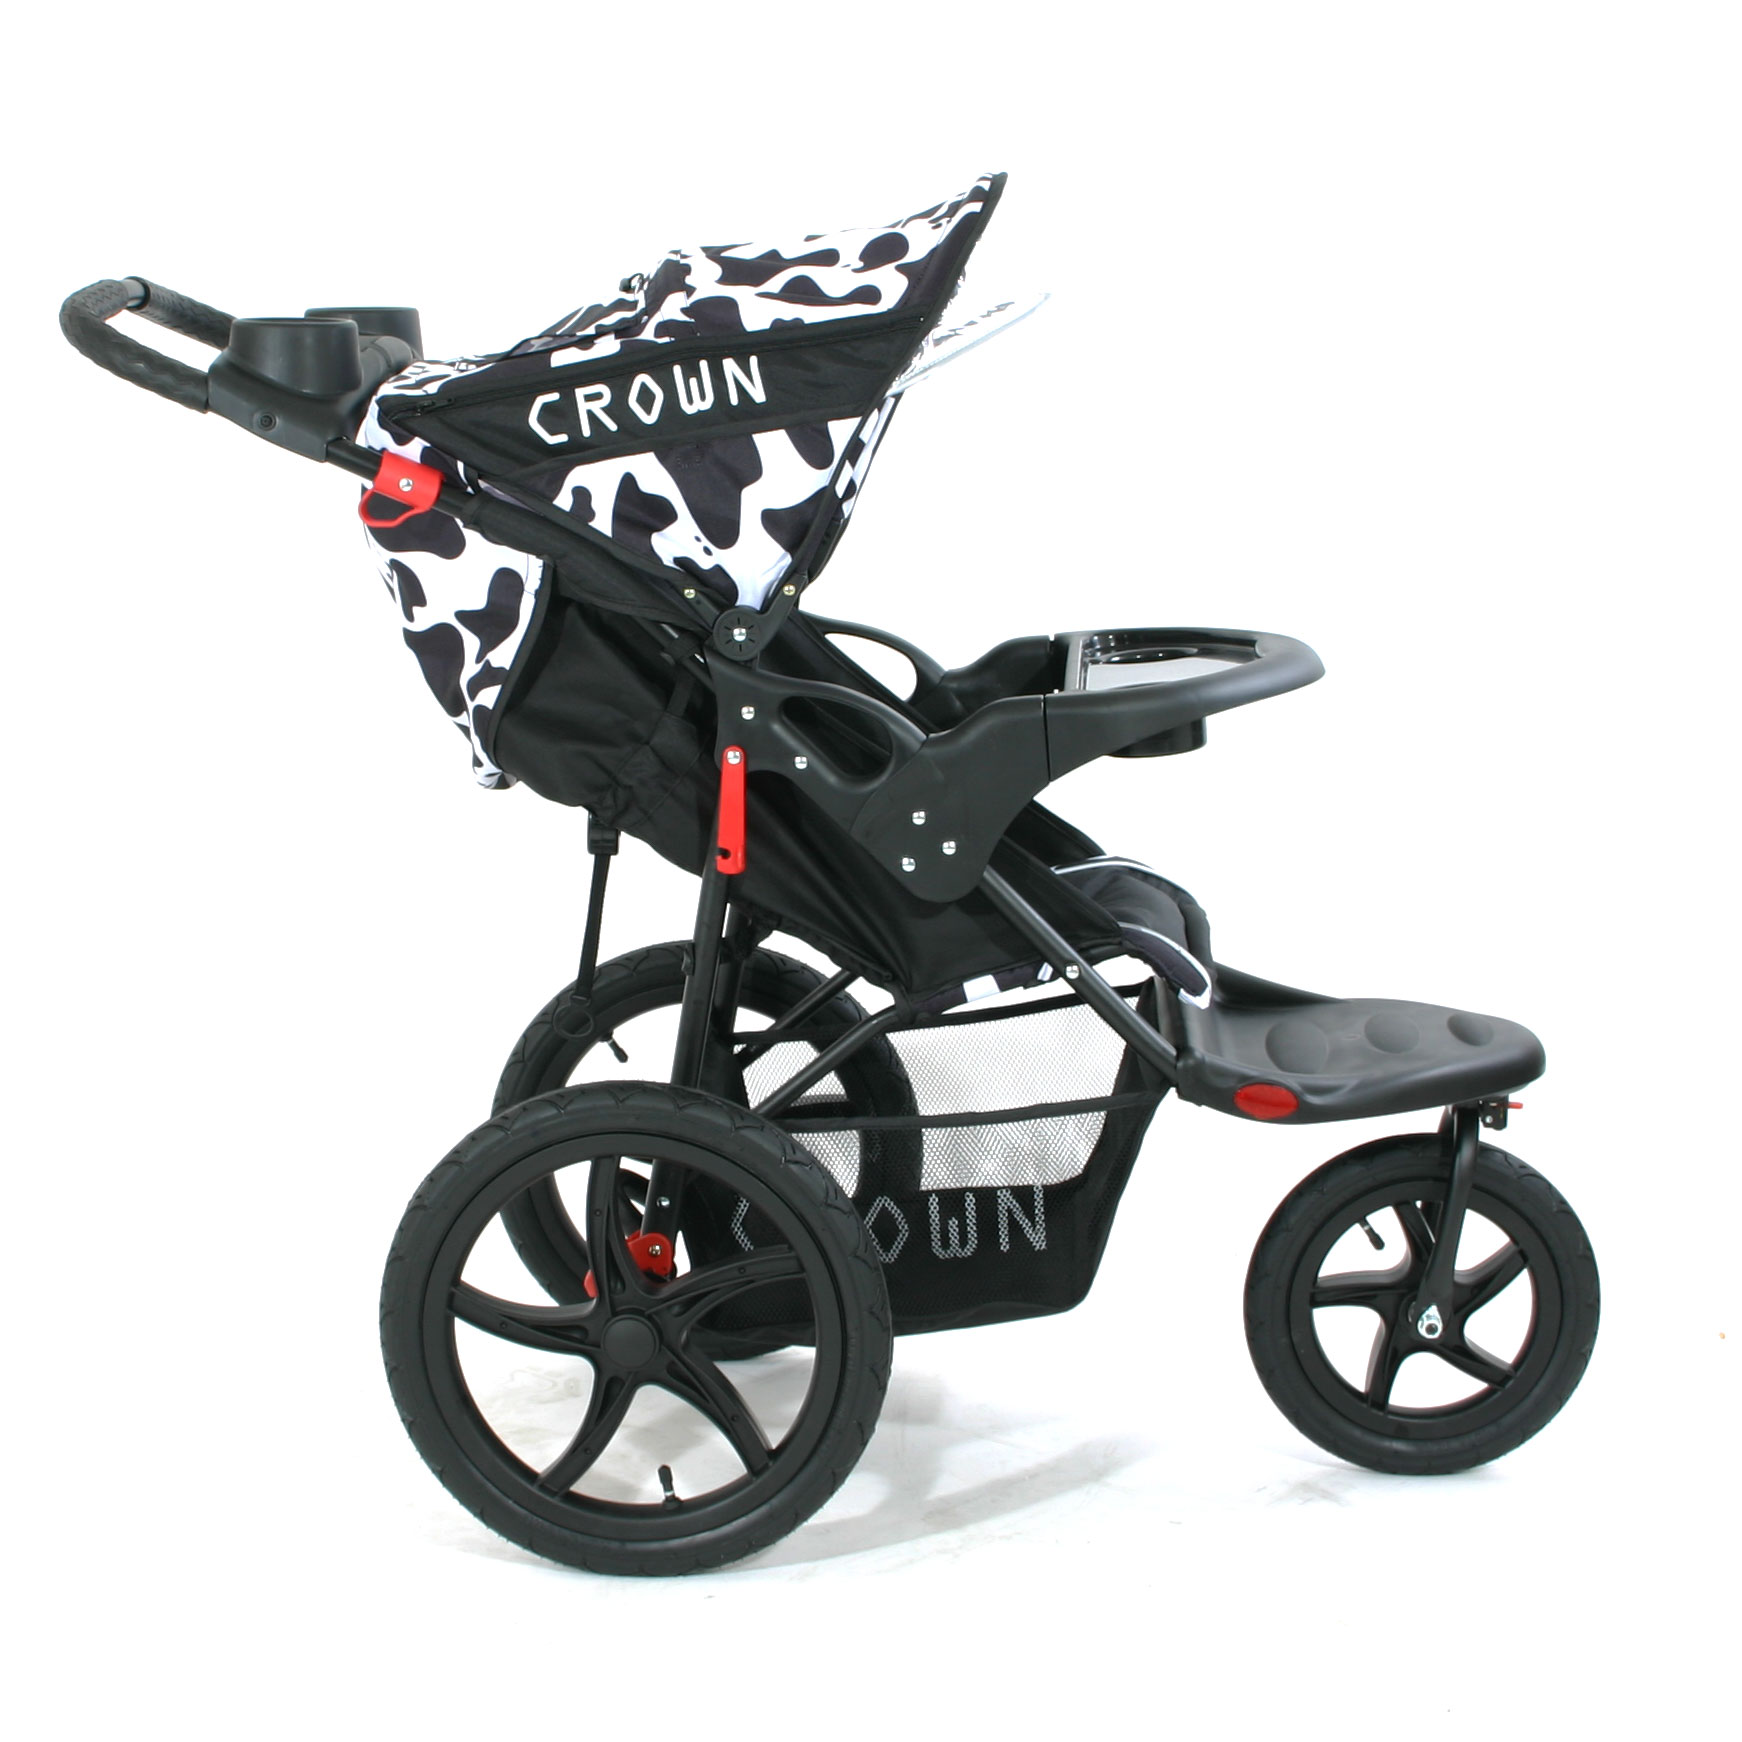 crown st930 16 zoll kinderwagen jogger cow kinderwagen jogger. Black Bedroom Furniture Sets. Home Design Ideas